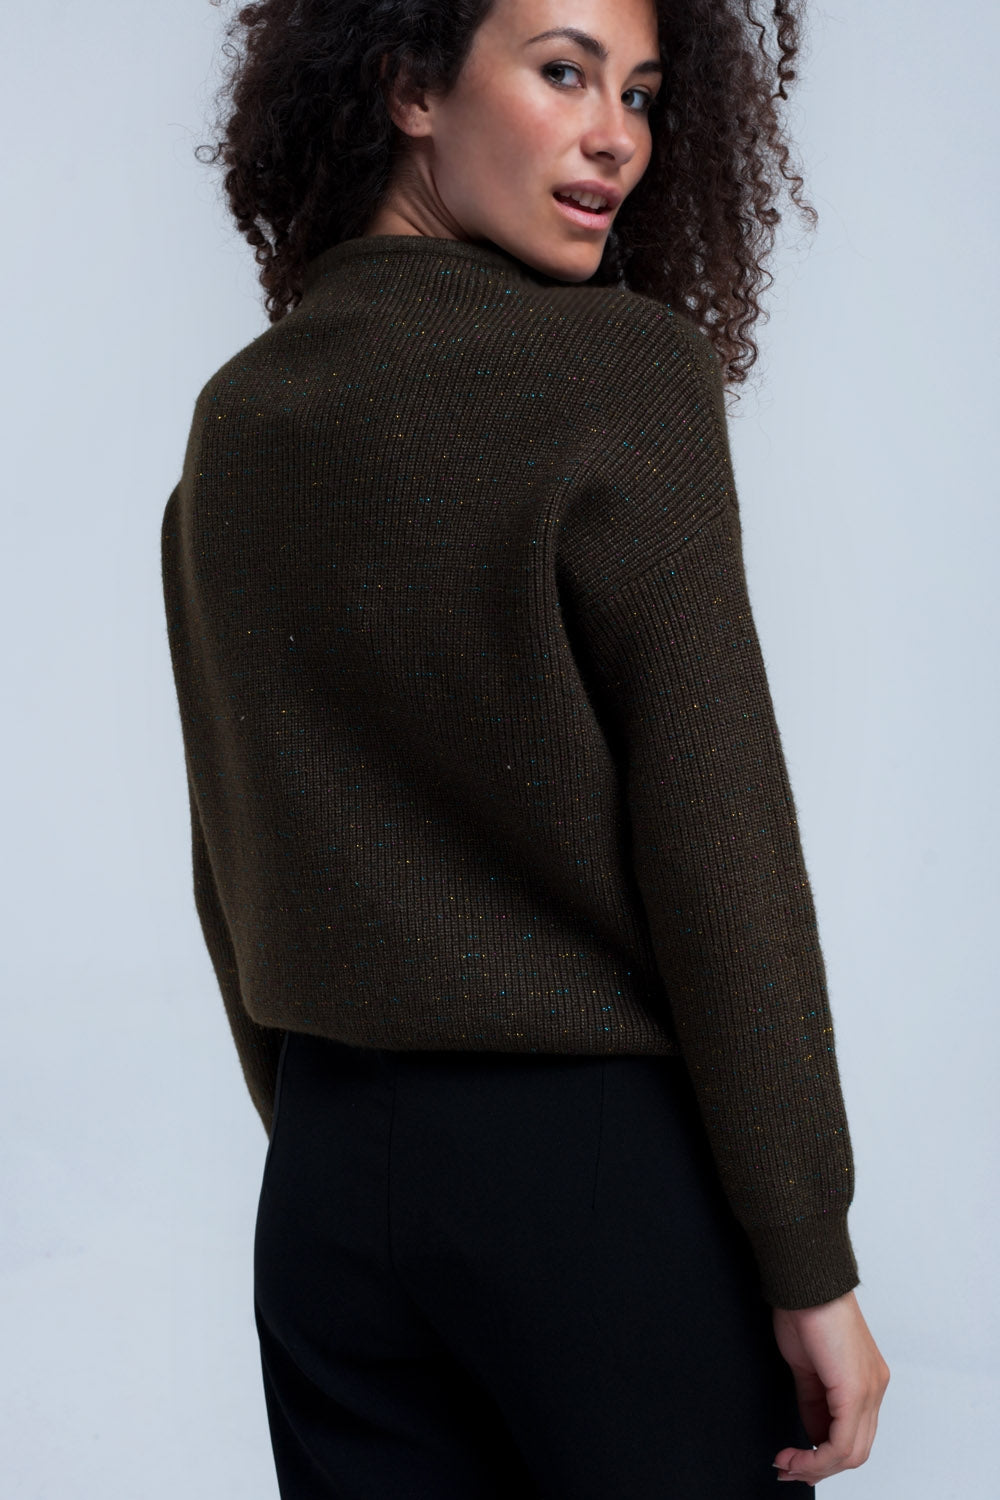 Ribbed Khaki Sweater-Women - Apparel - Sweaters - Pull Over-Product Details Ribbed khaki sweater with multicolor shiny thread striped. It has a crew neck and long sleeves. Soft woven fabric. Regular fit.-Keyomi-Sook